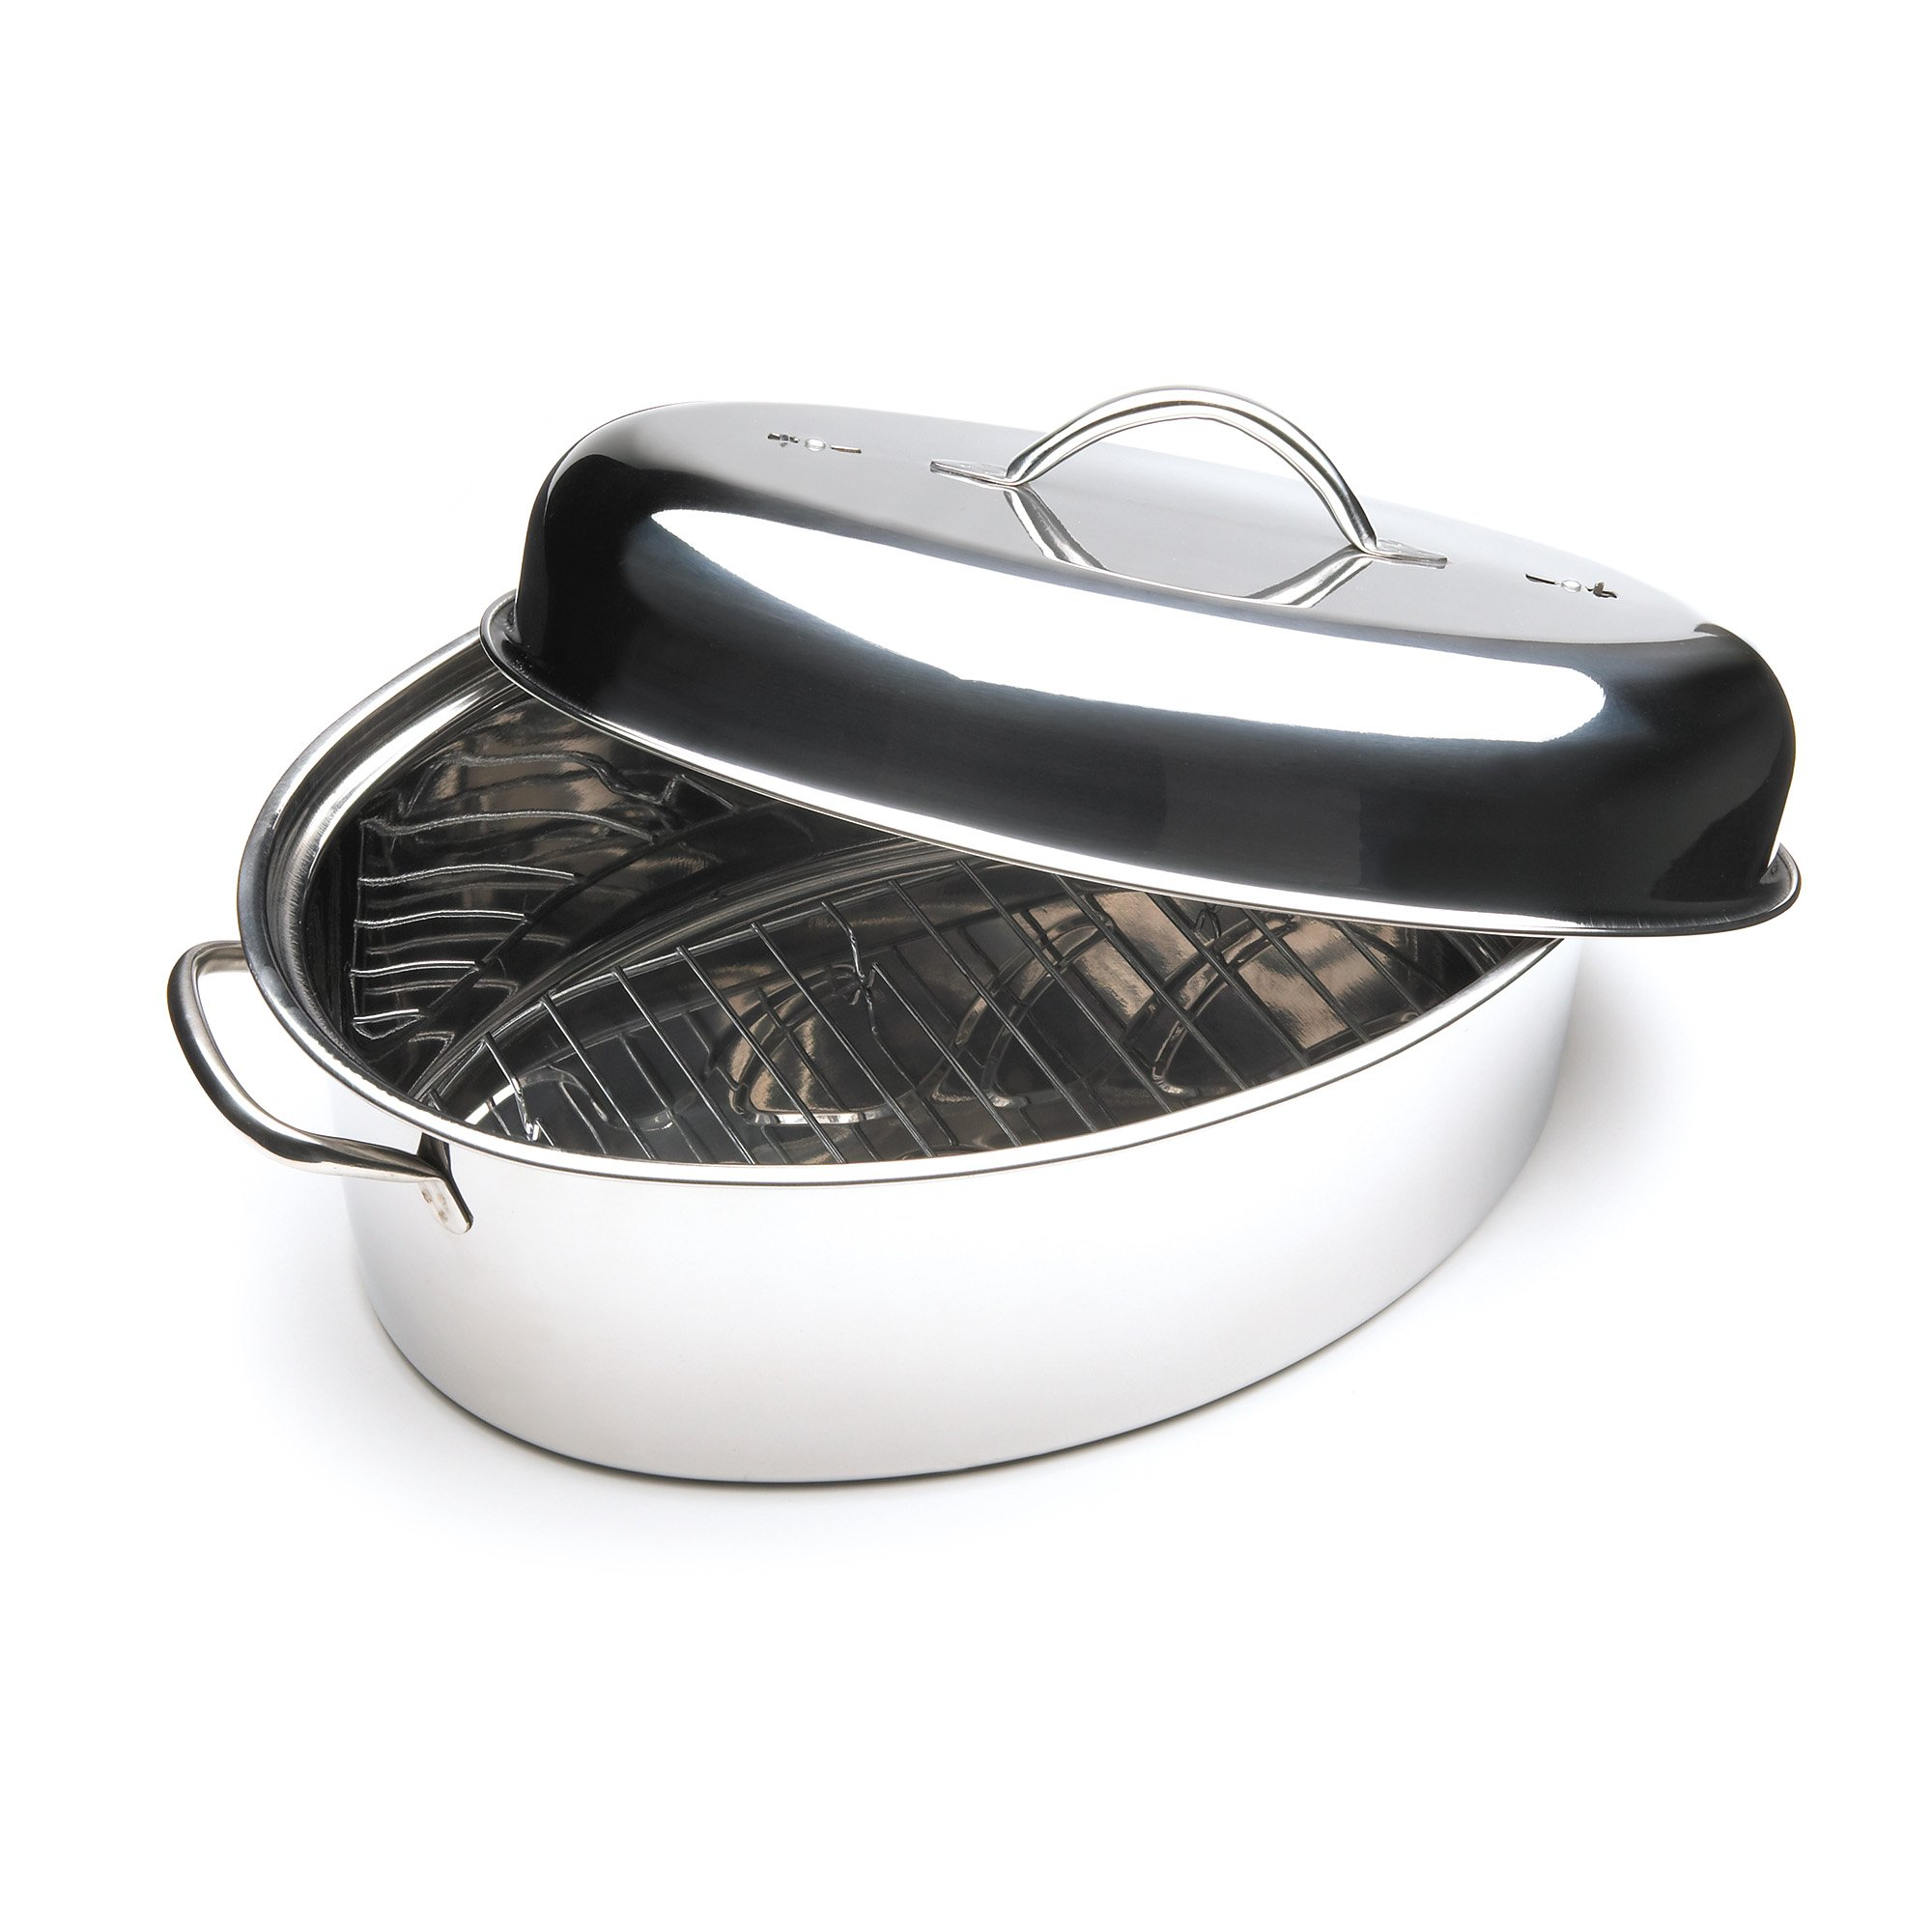 Fox Run 0171 Oval Roaster Set, Stainless Steel, 10-Quart by Unknown